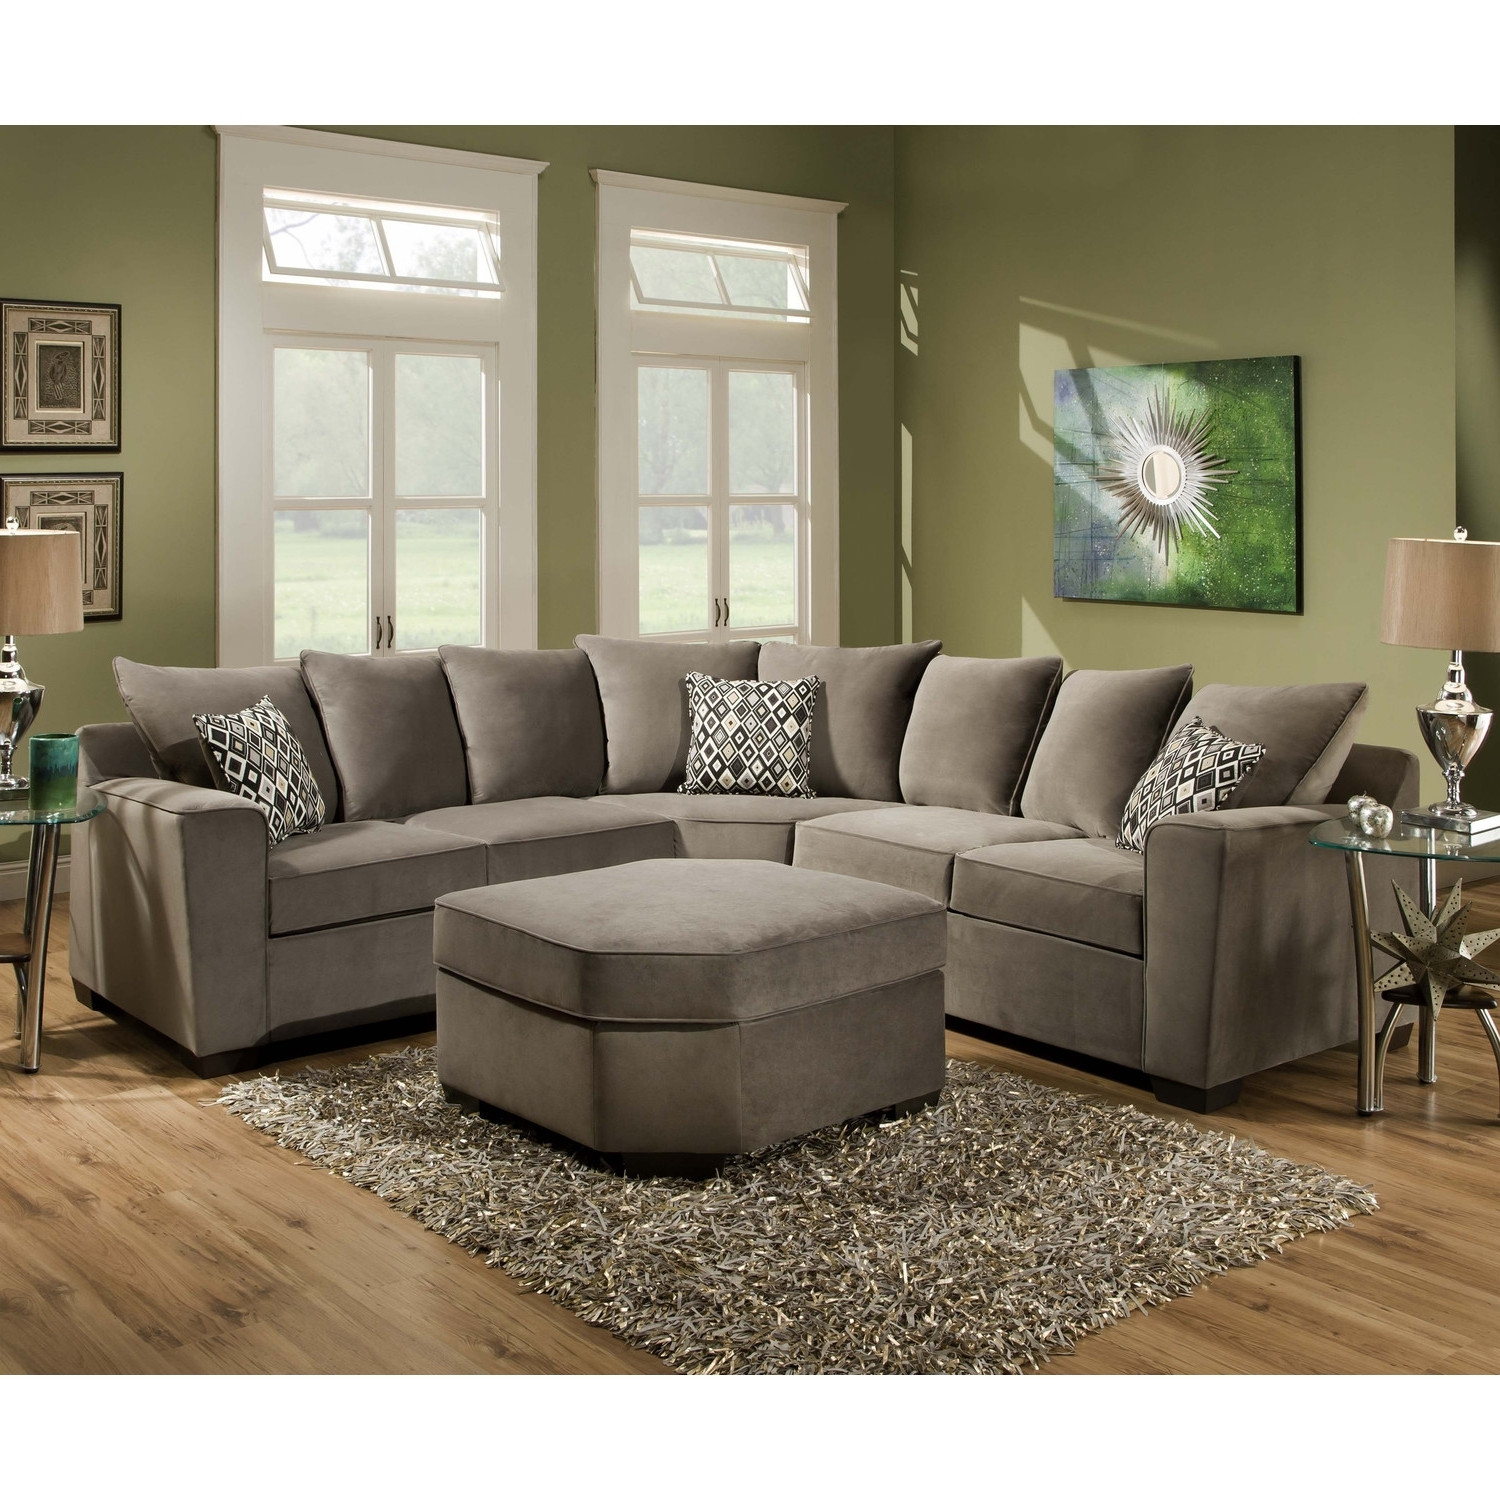 Latest Trend Of Plush Sectional Sofas 19 About Remodel Sectional For Best And Newest Plush Sectional Sofas (View 5 of 20)